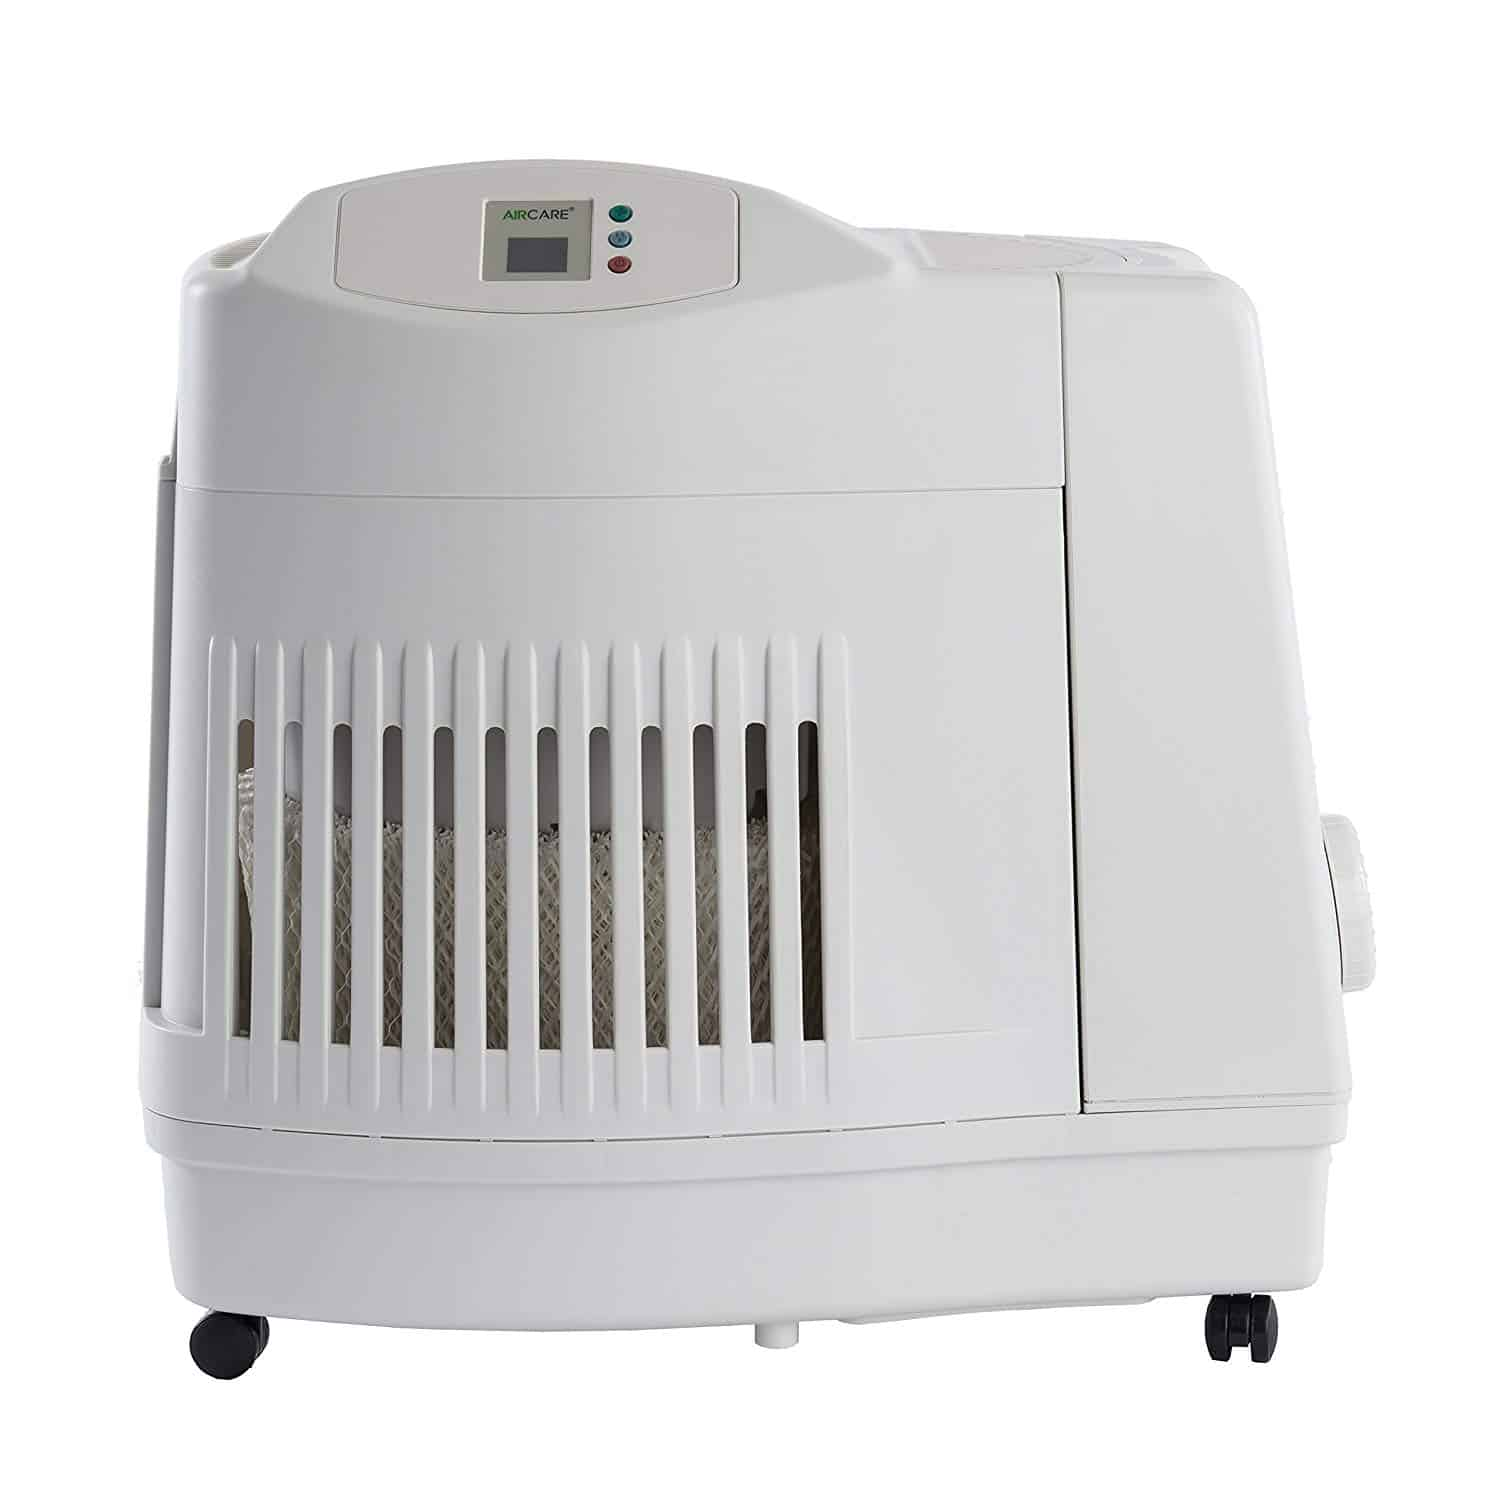 AirCare MA1201 whole house Console-Style Evaporative Humidifier